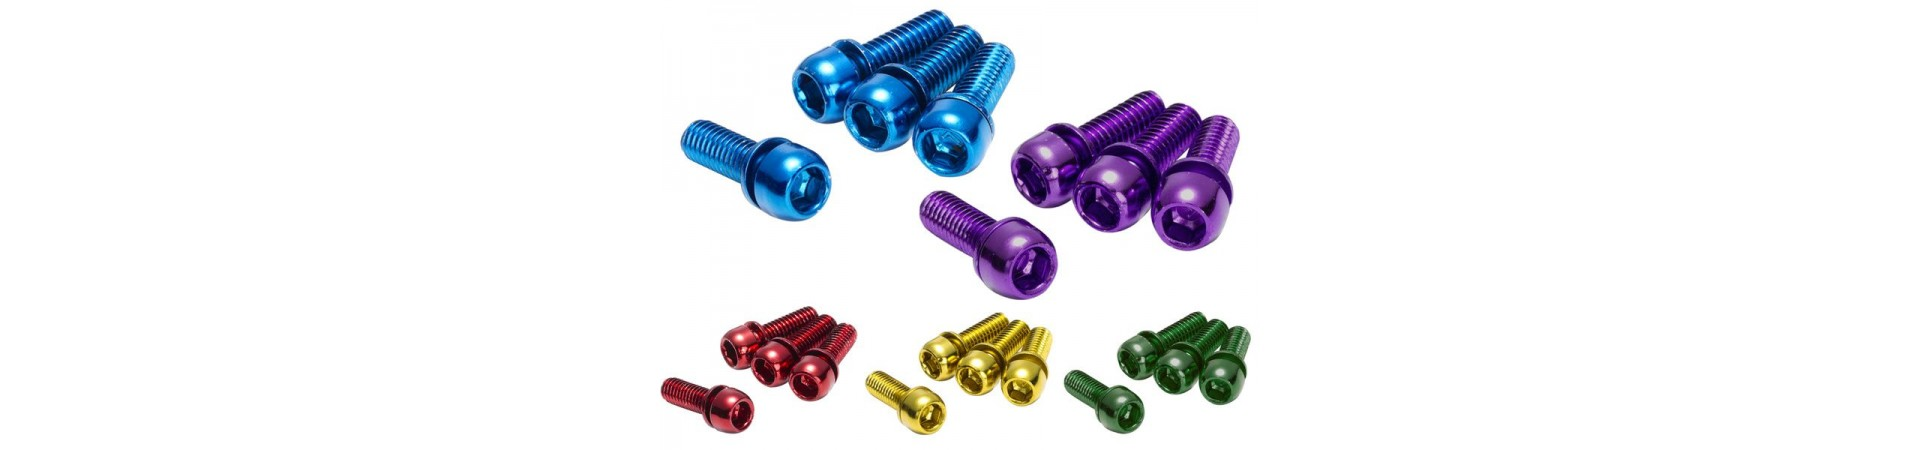 FASTENERS & INSERTS